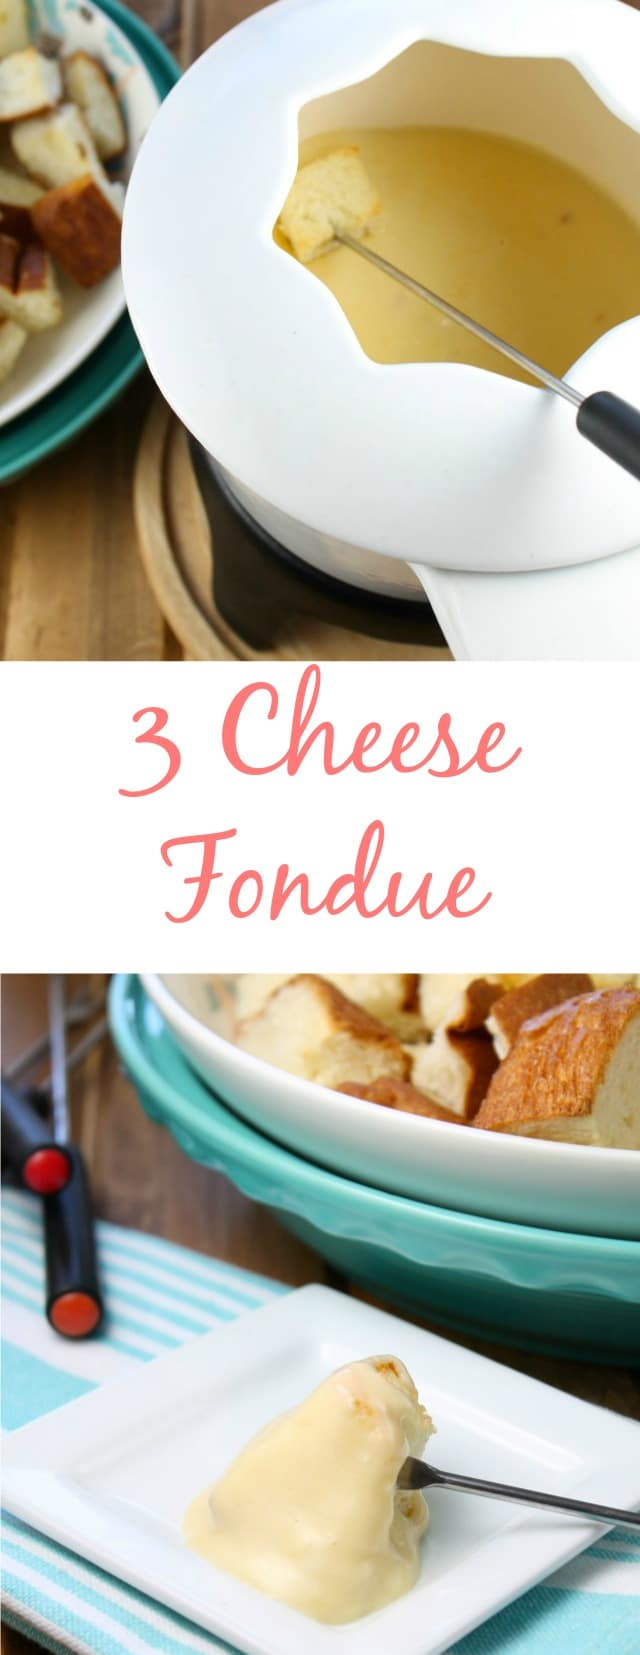 Three Cheese Fondue ~ recipe found at missinthekitchen.com